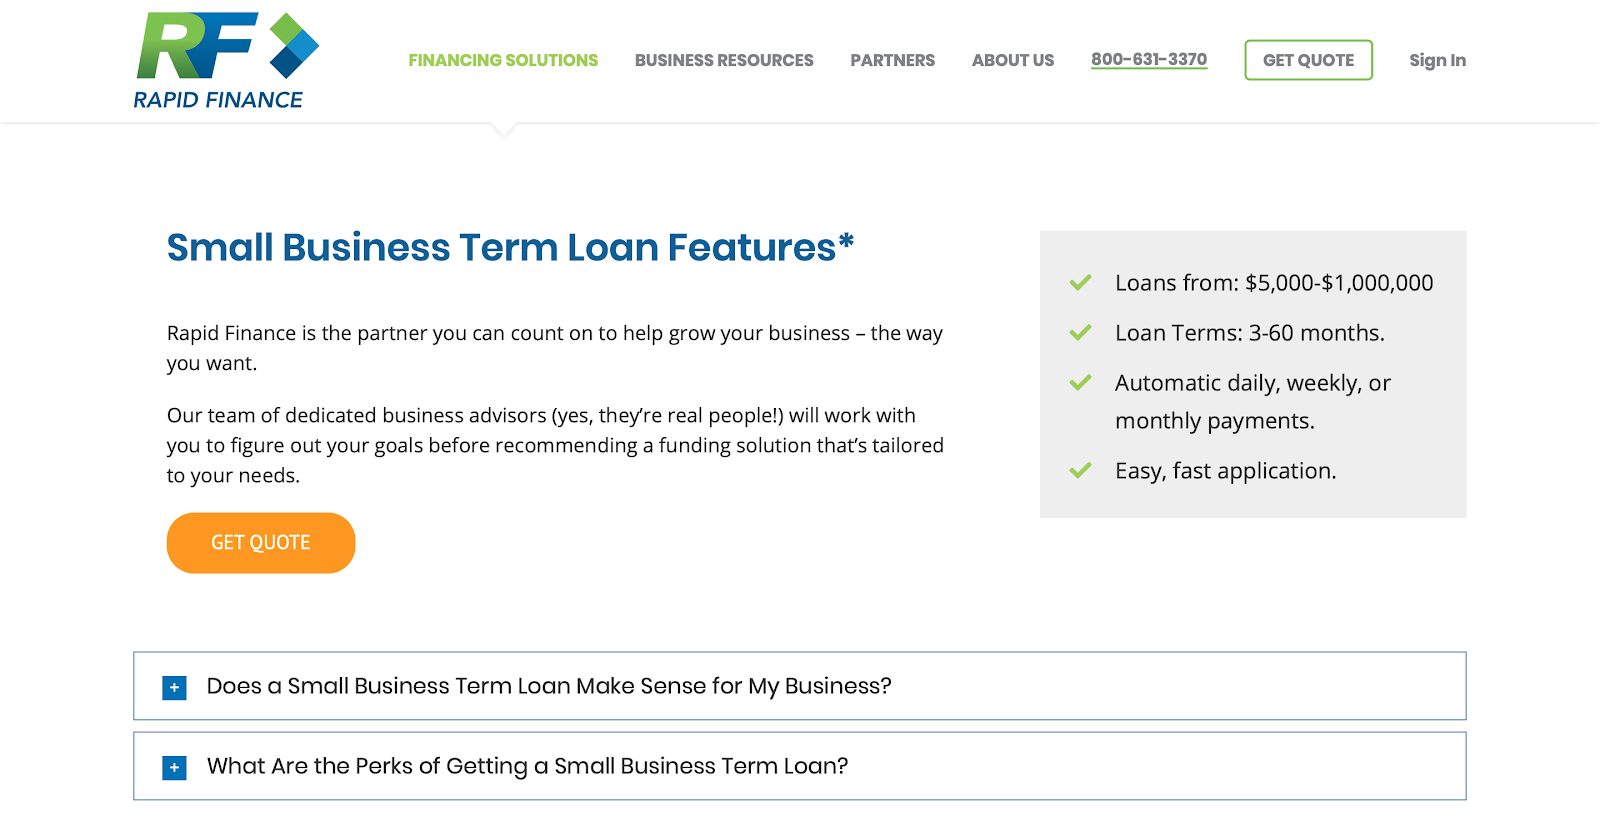 Best Small Business Loan Providers of 2019